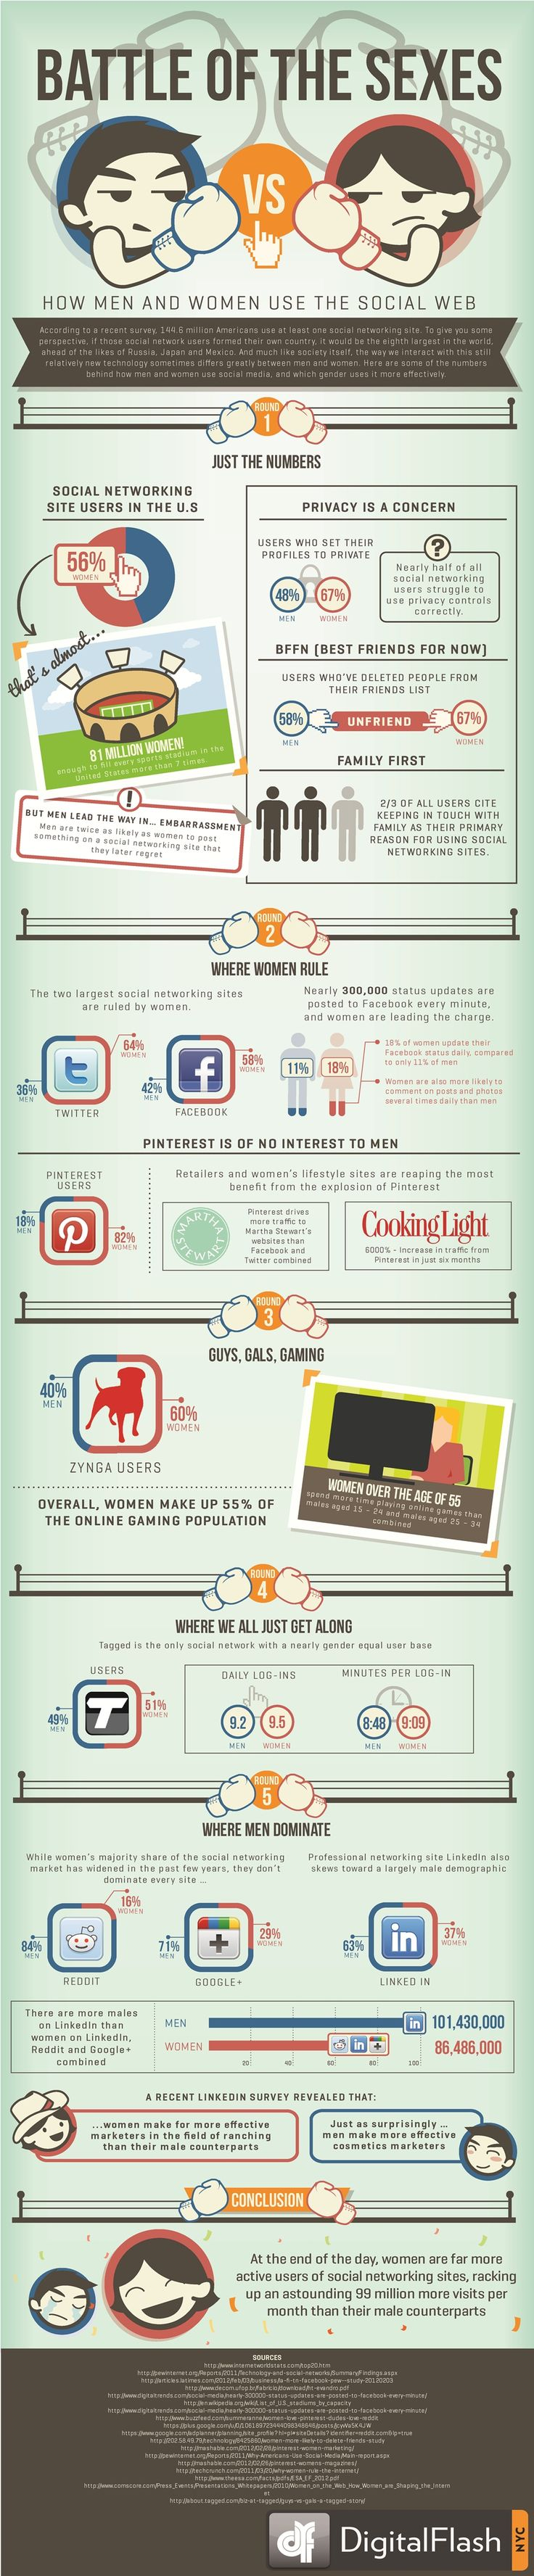 Battle of the Sexes on Social Media INFOGRAPHIC #audience via @Mashable